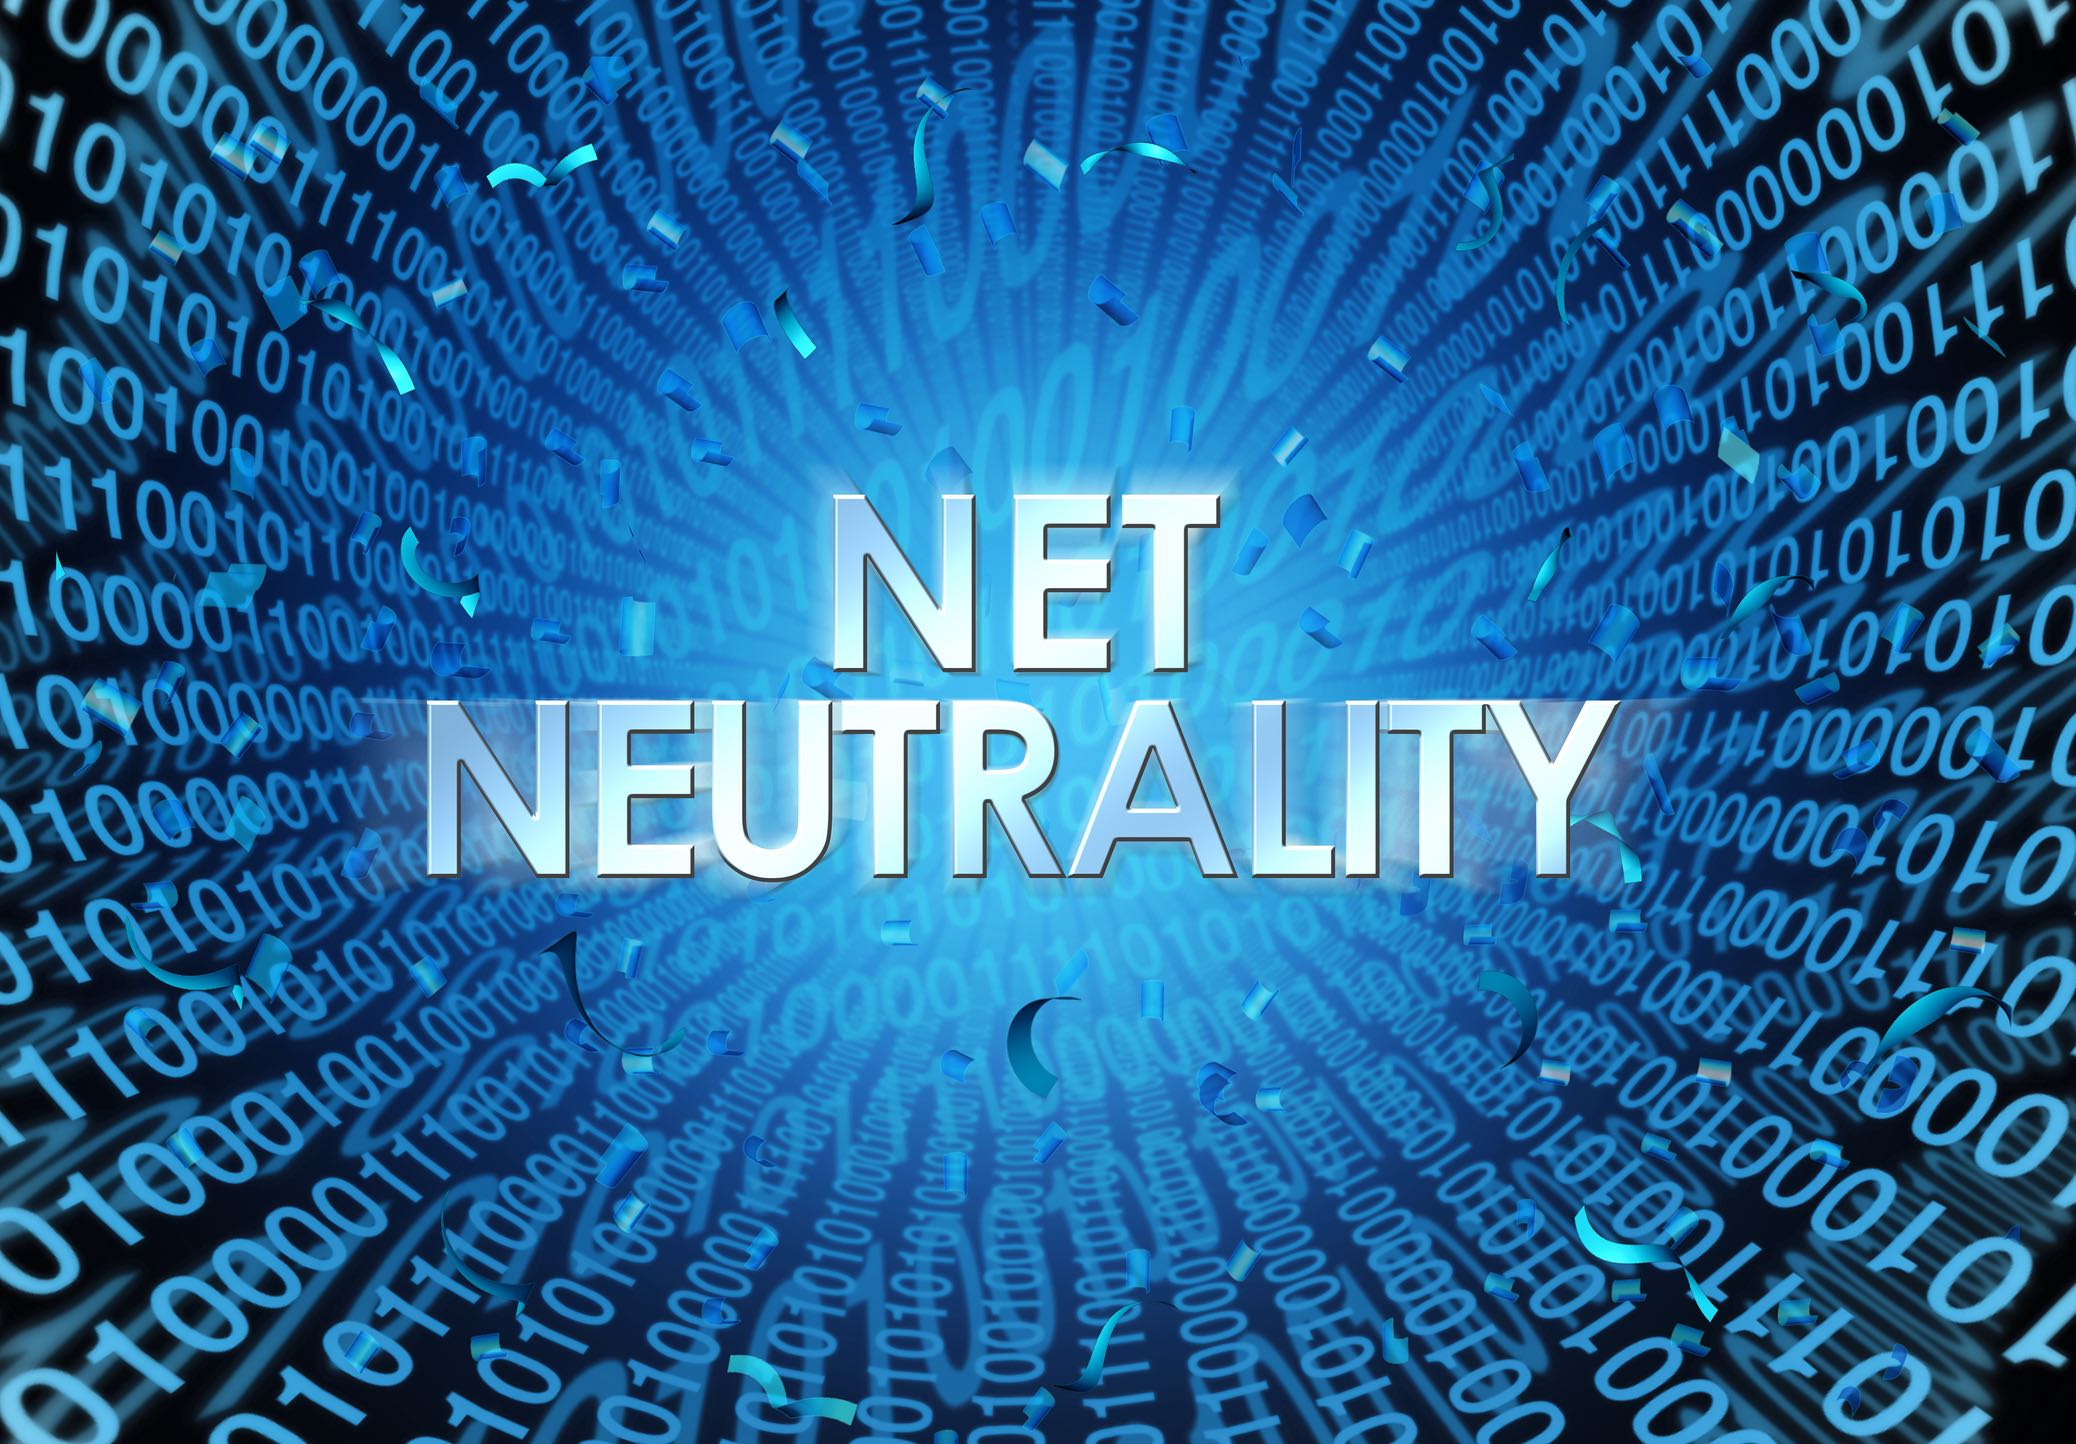 net neutrality Net neutrality activists in washington the trump administration is trying to overturn obama-era regulations that protected it photograph: upi / barcroft.